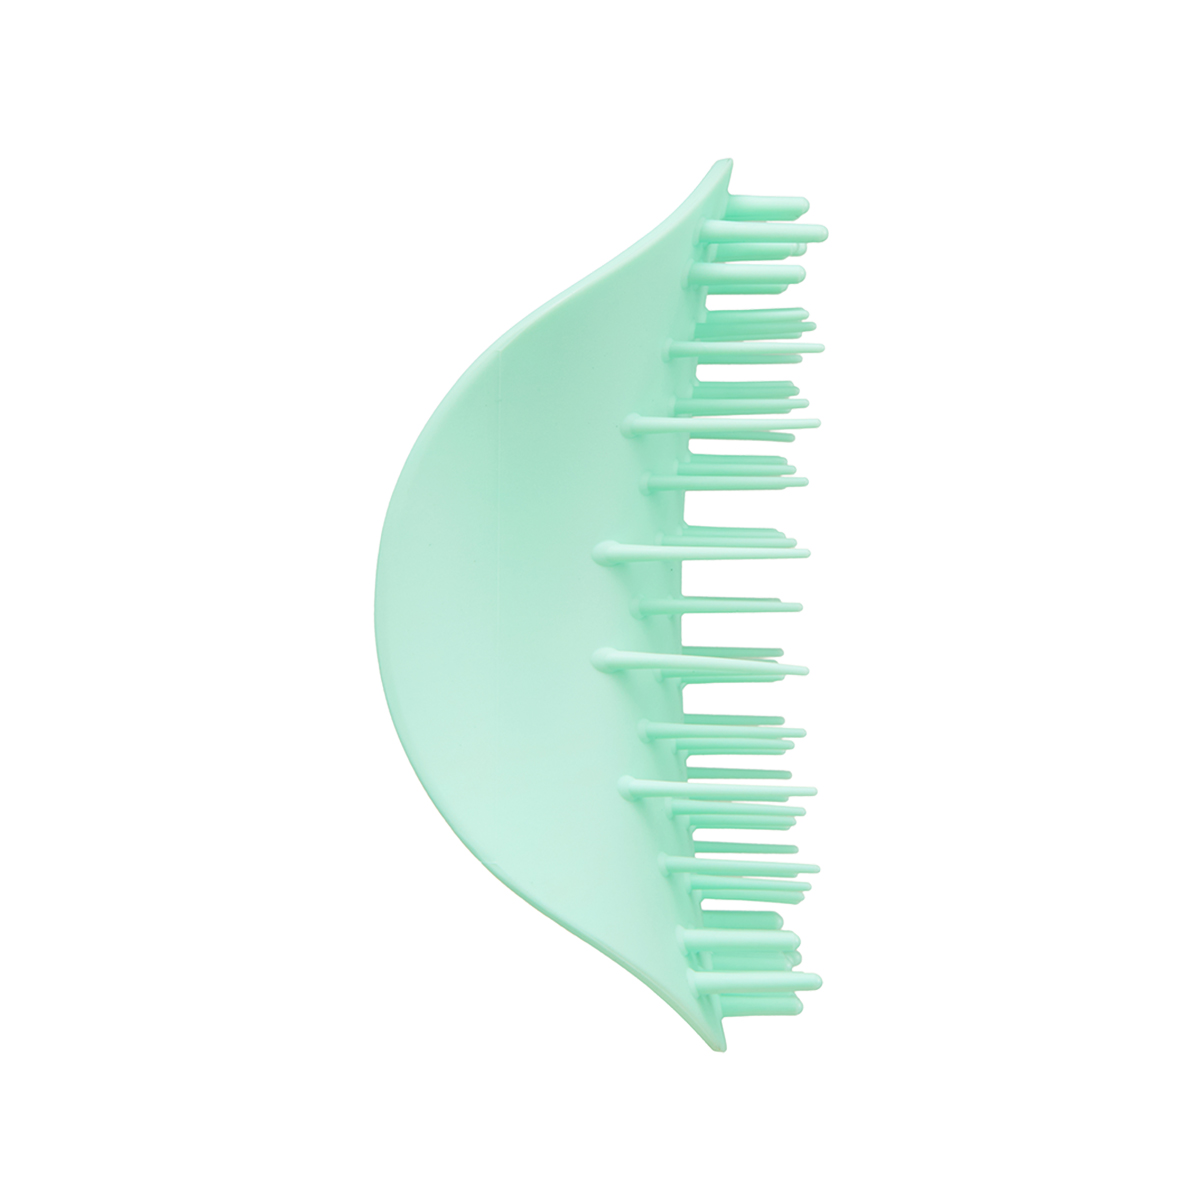 Щетка для массажа головы Tangle Teezer The Scalp Exfoliator and Massager Mint Green Whisper